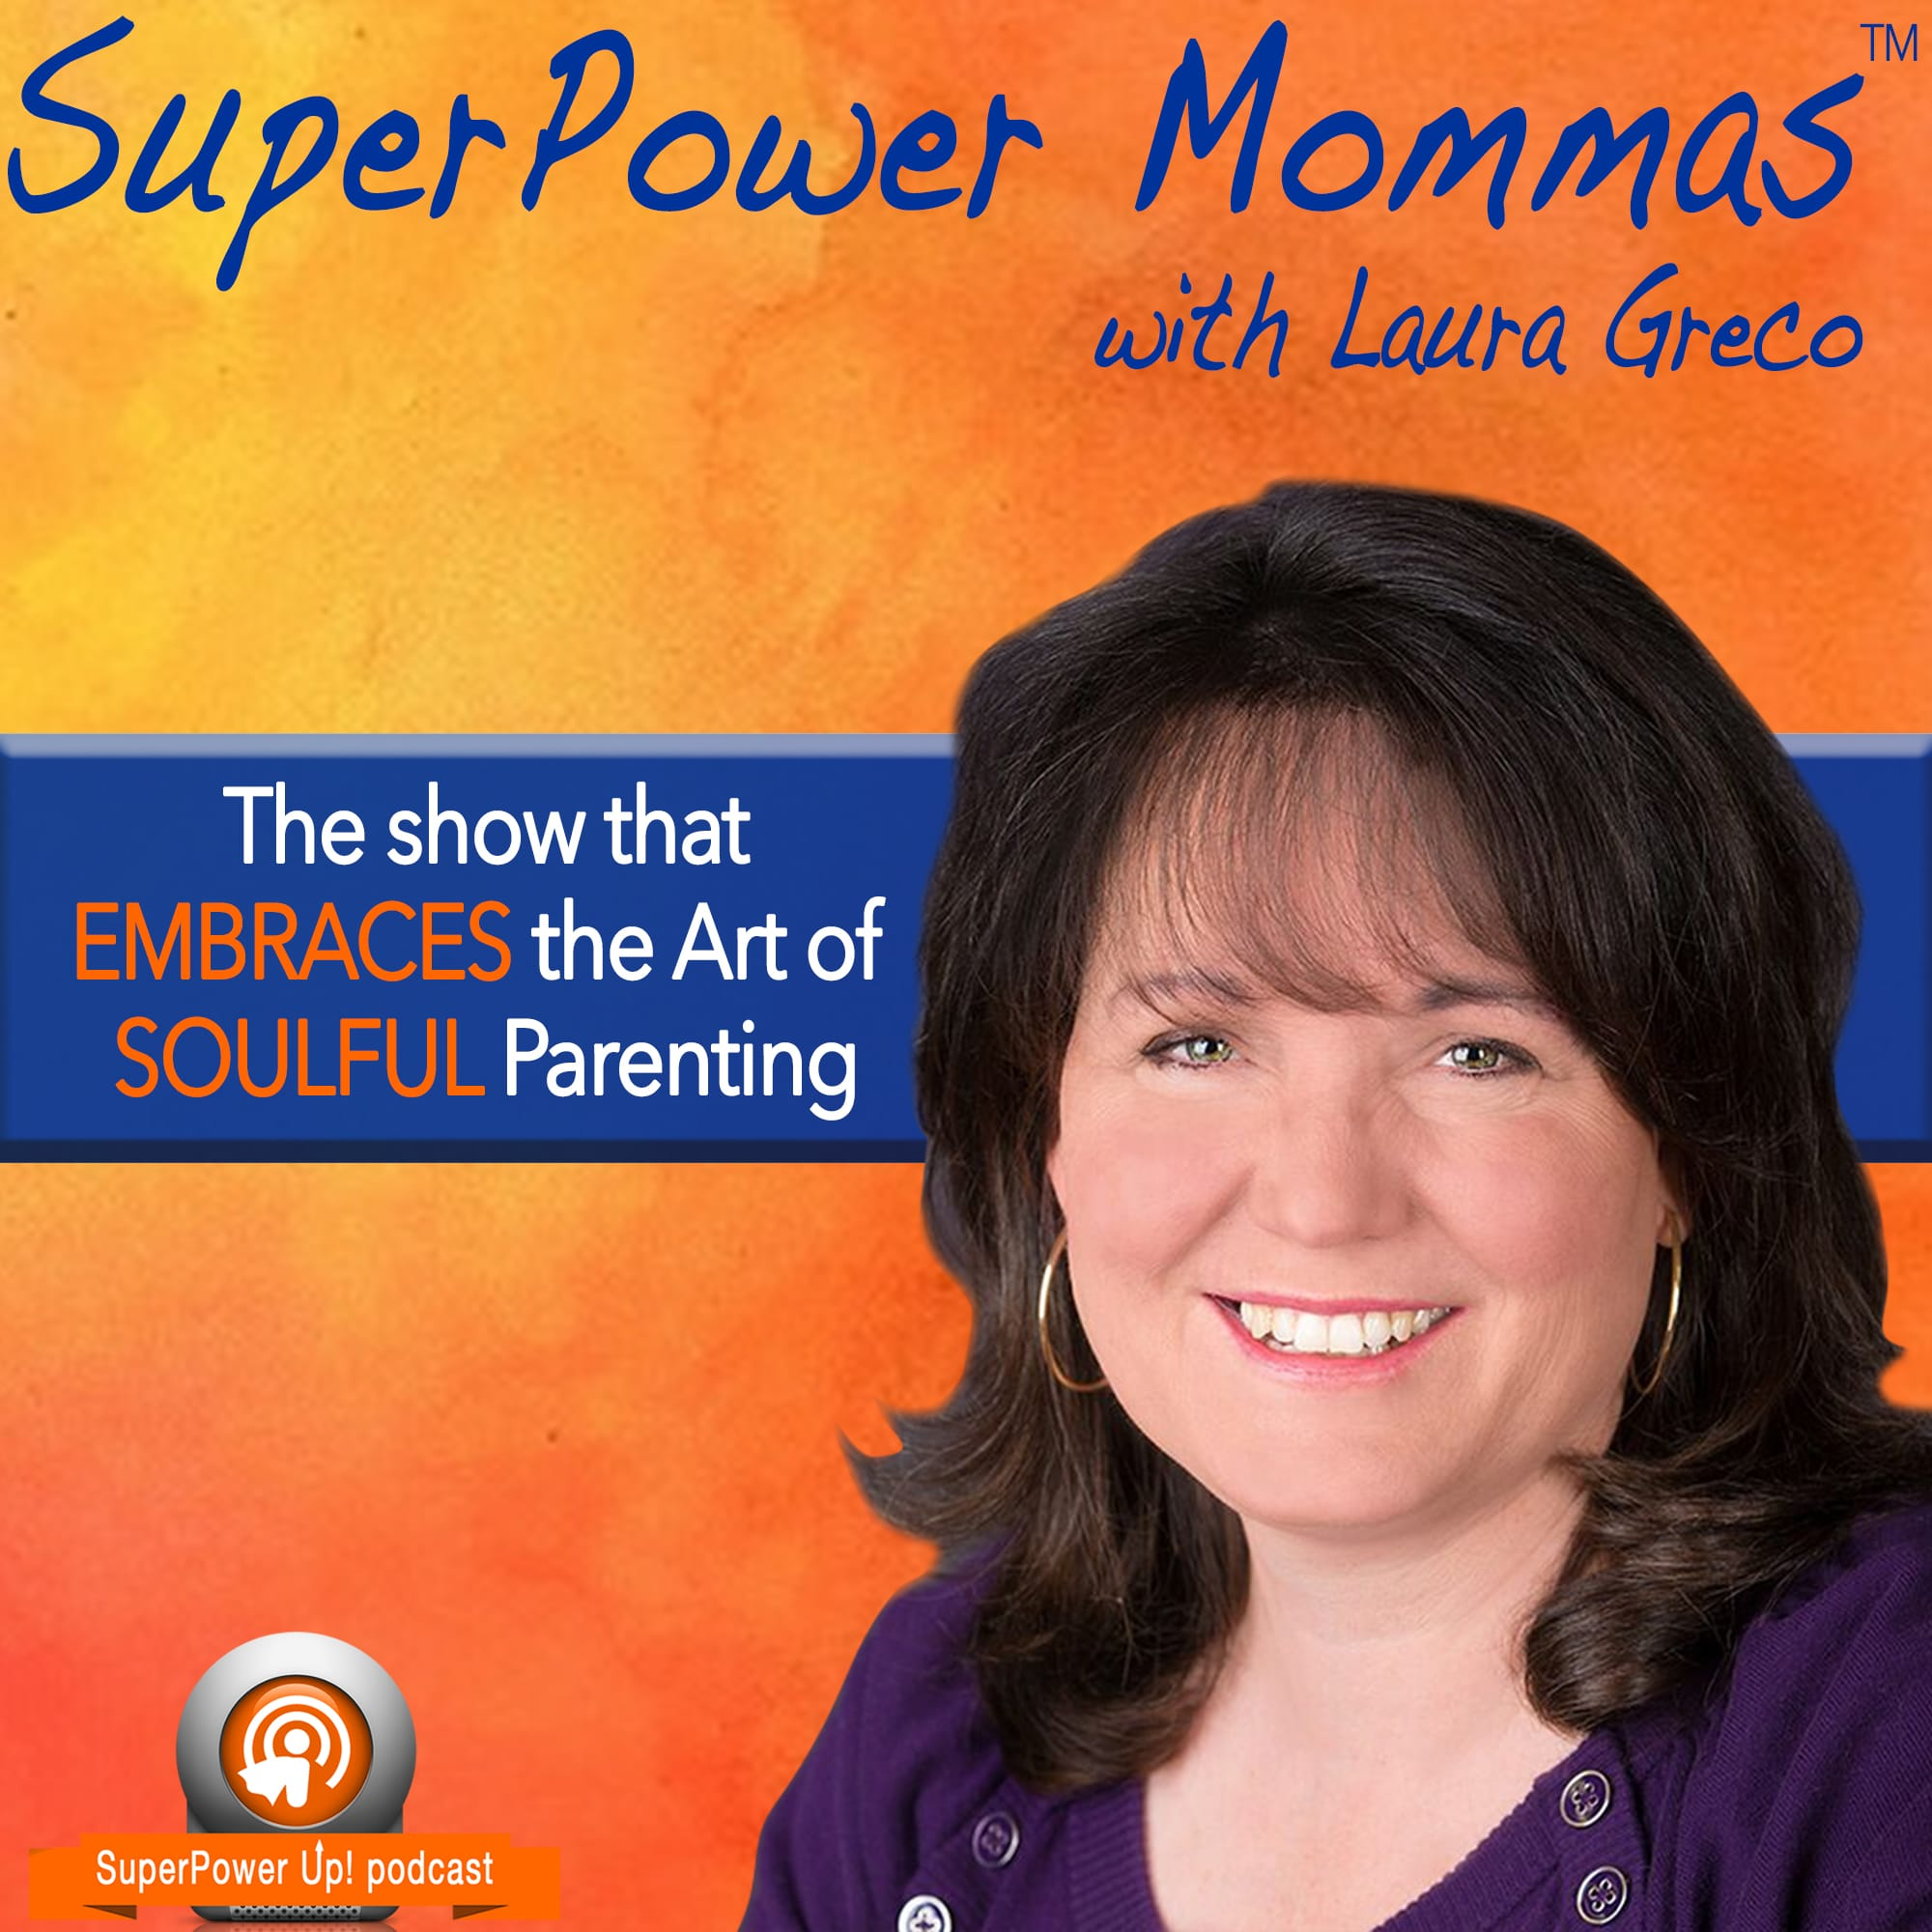 SuperPower Mommas with Laura Greco